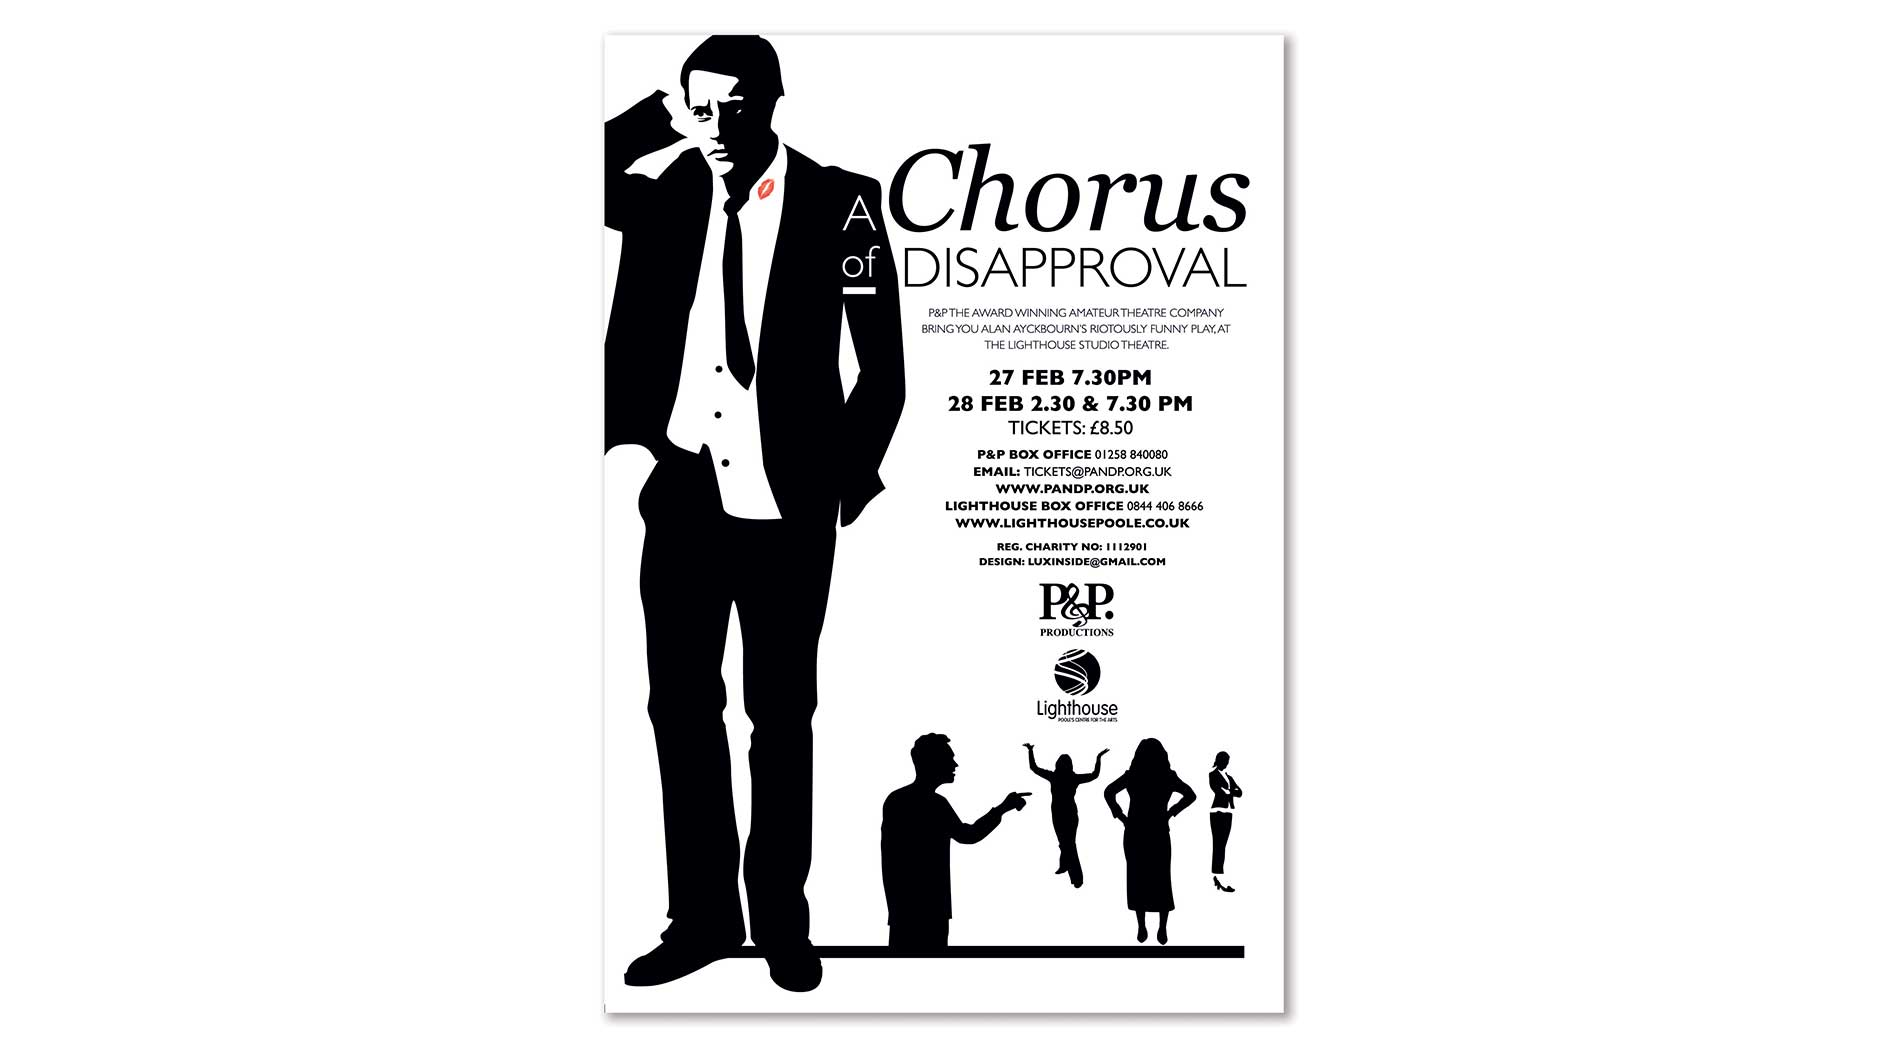 Chorus of Disapproval poster design